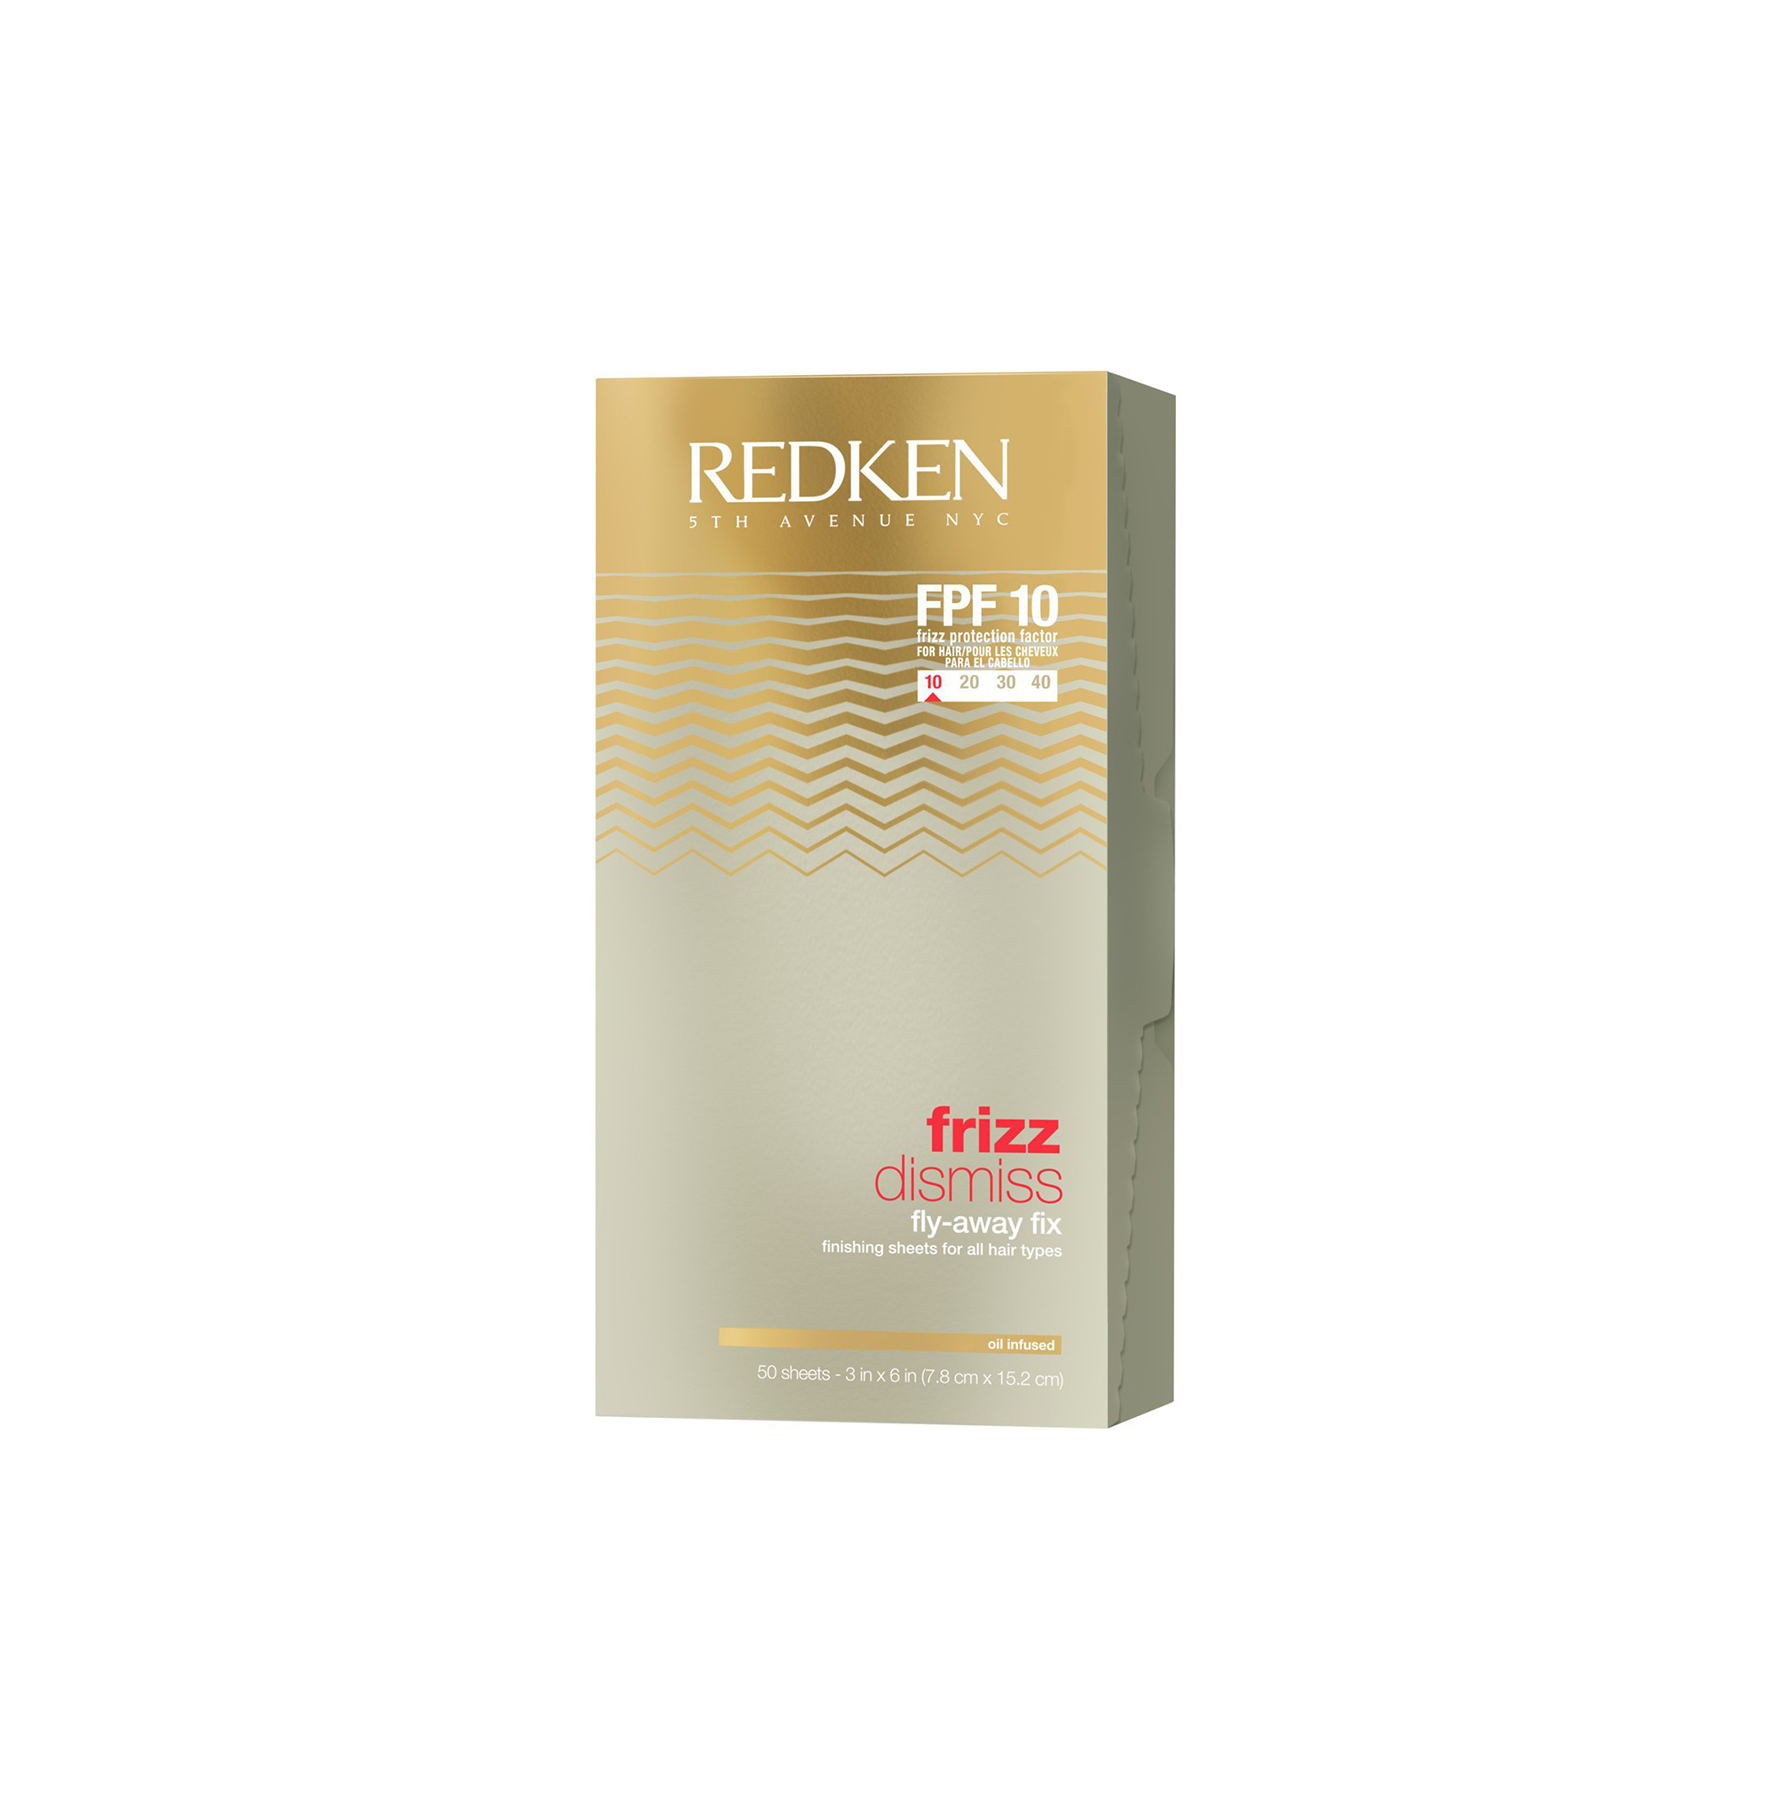 Redken Frizz Dismiss FPF 10 Fly-Away Fix